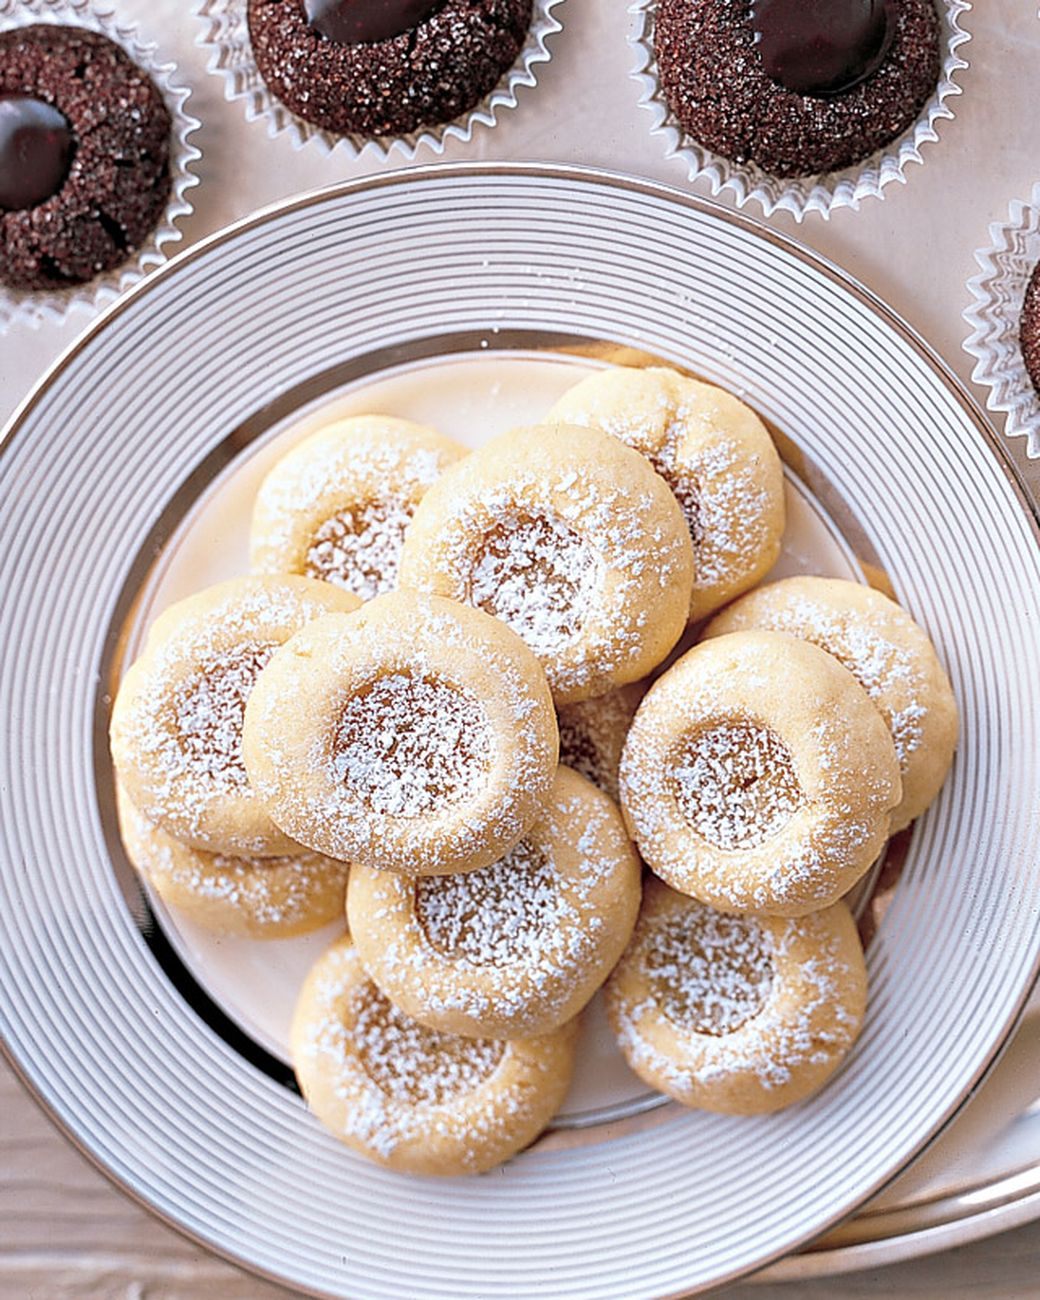 Sweet-tart Key lime thumbprints bring cakey and creamy together in each bite.